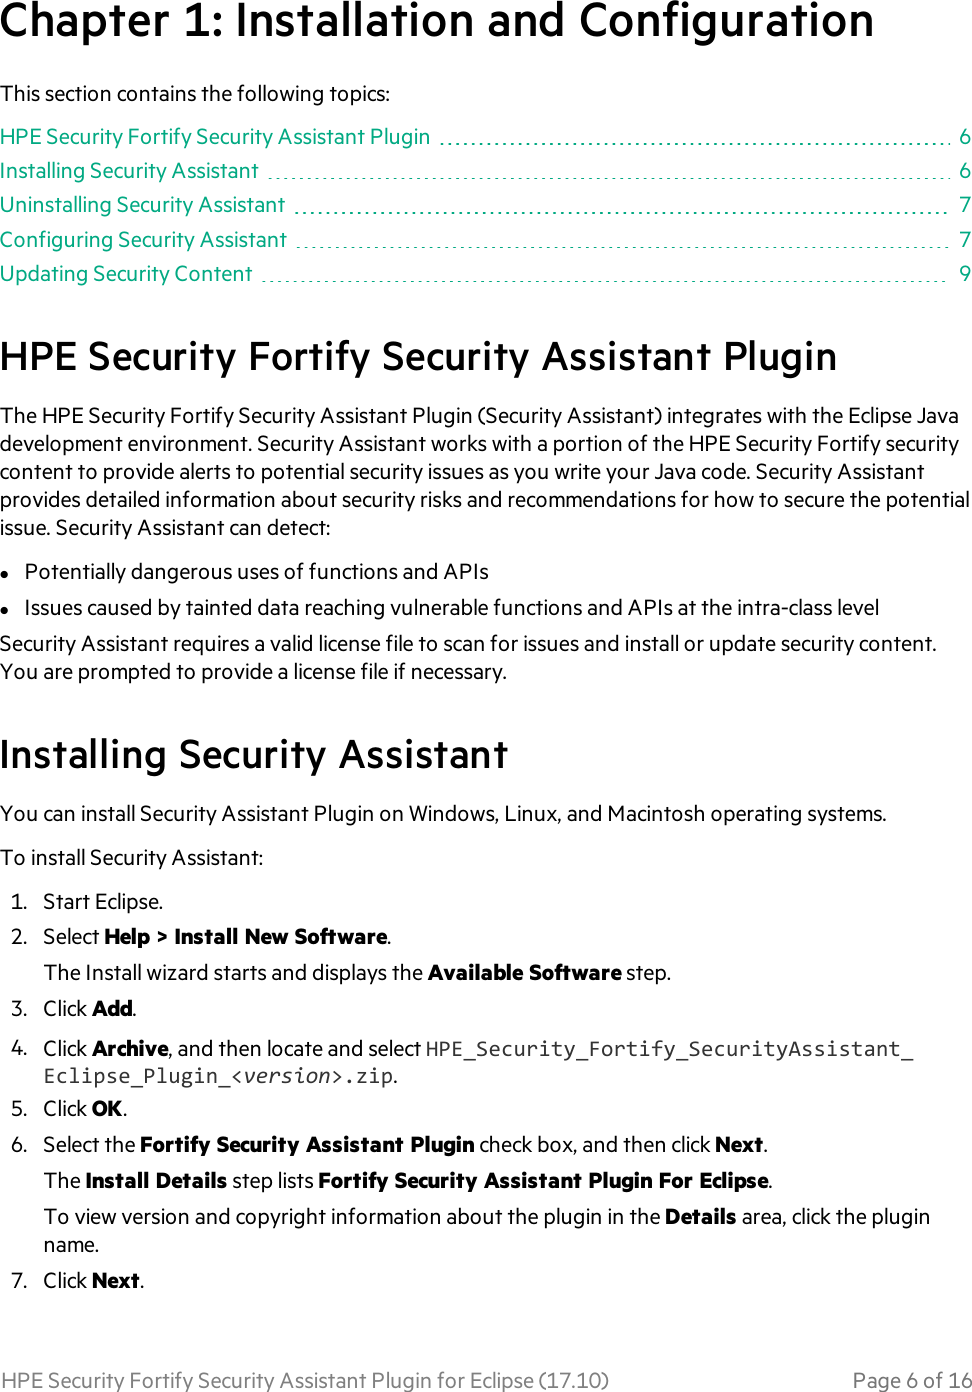 HPE Security Fortify Assistant Plugin For Eclipse User Guide